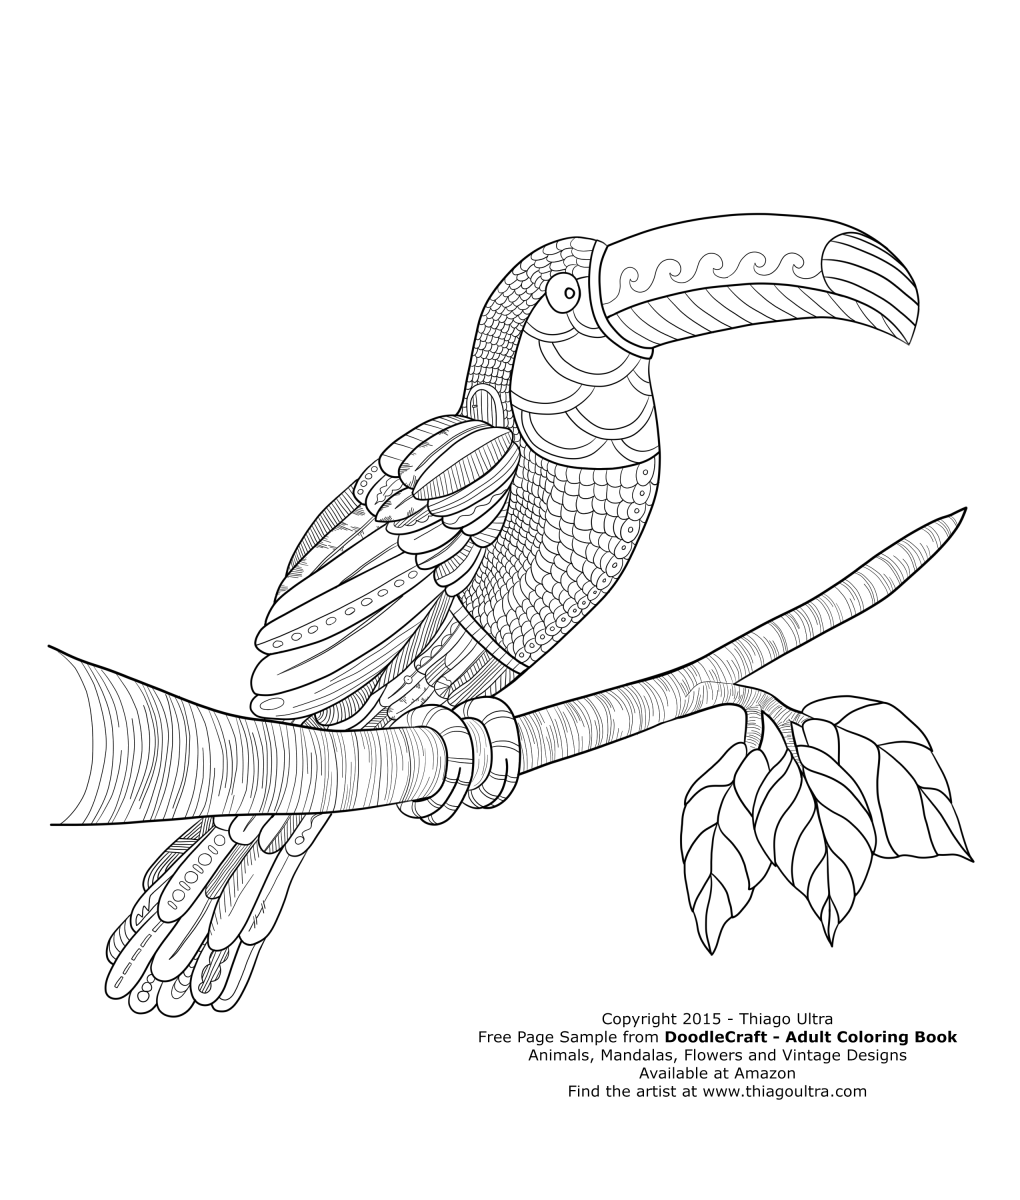 toucan free page sample doodlecraft coloring book